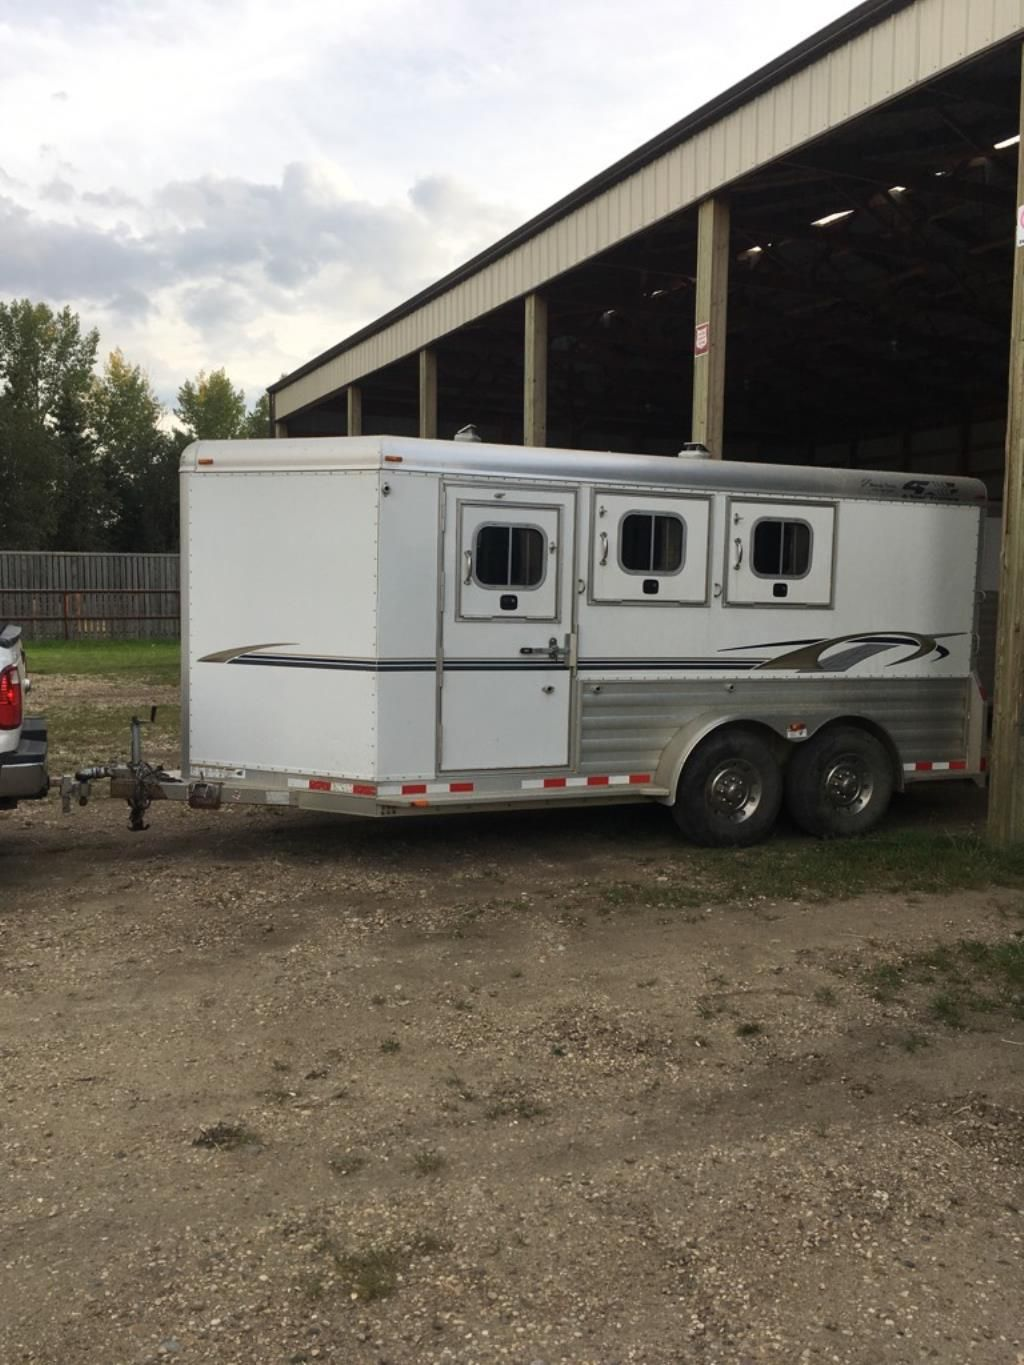 Trailer For Sale In Alberta 4 Star 3 Horse 7 Foot Wide 7 Foot